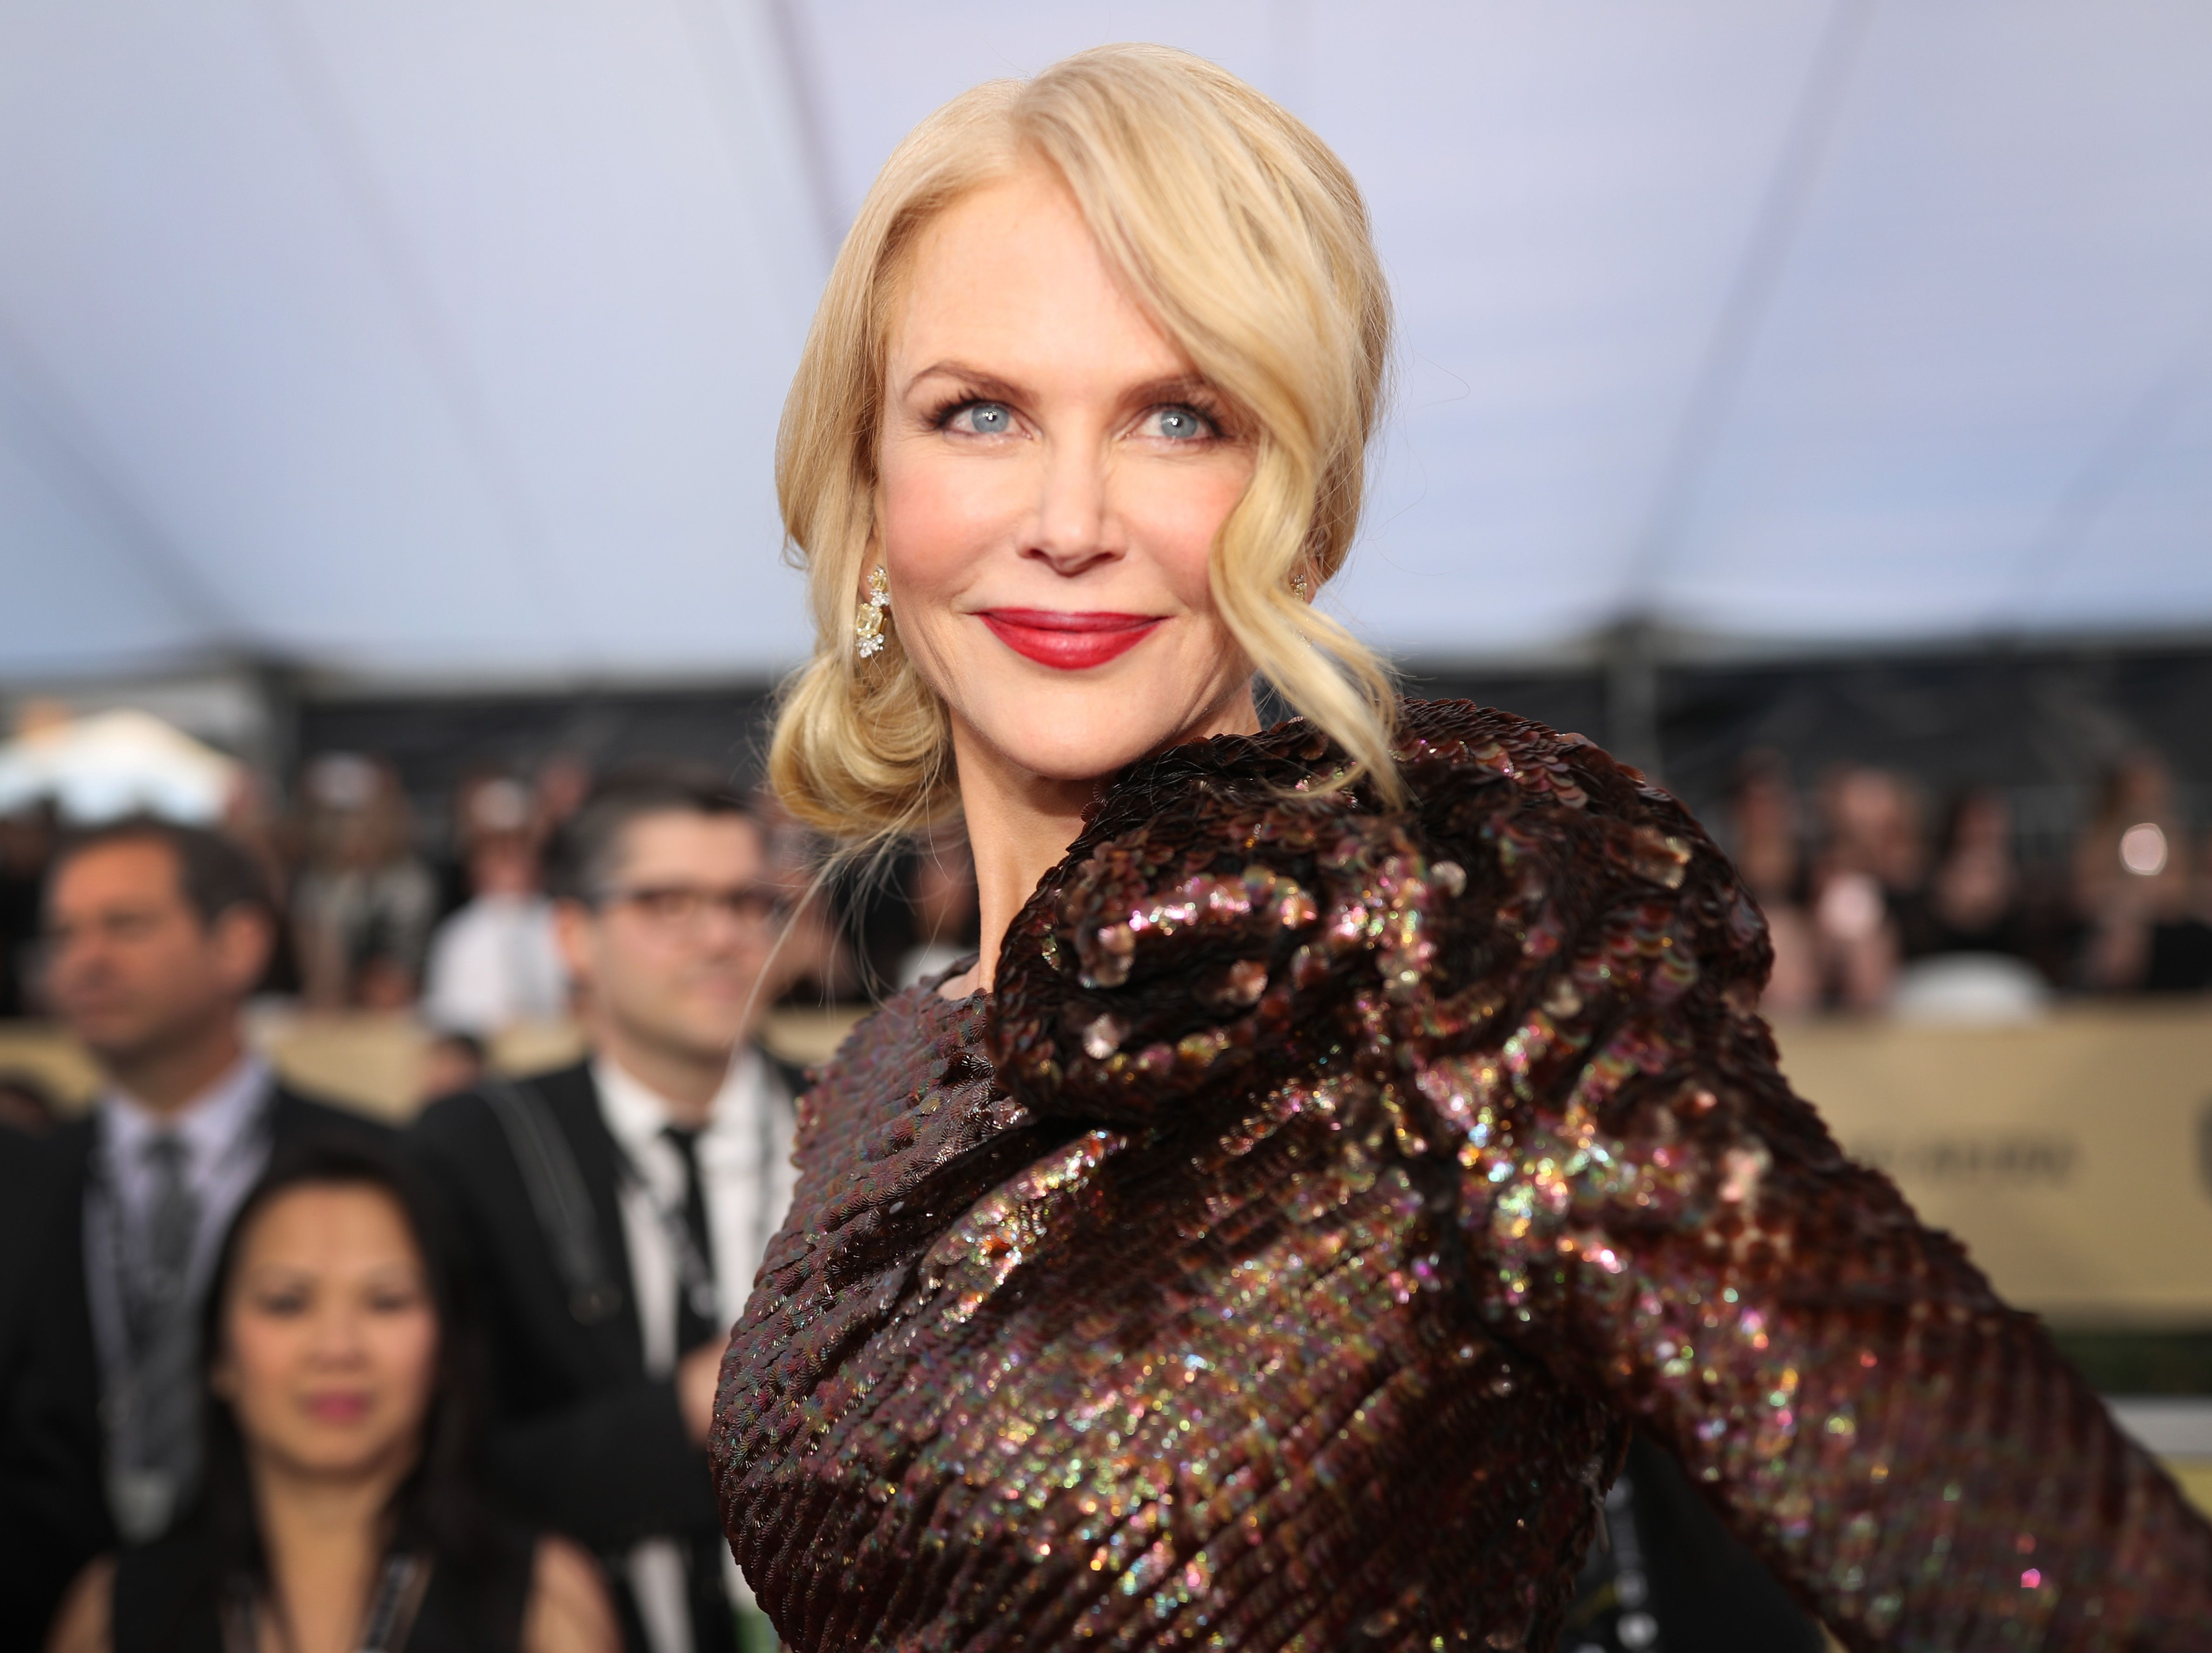 Niclole Kidman at the 24th Annual Screen Actors Guild Awards at The Shrine Auditorium on January 21, 2018 | Photo: Getty Images